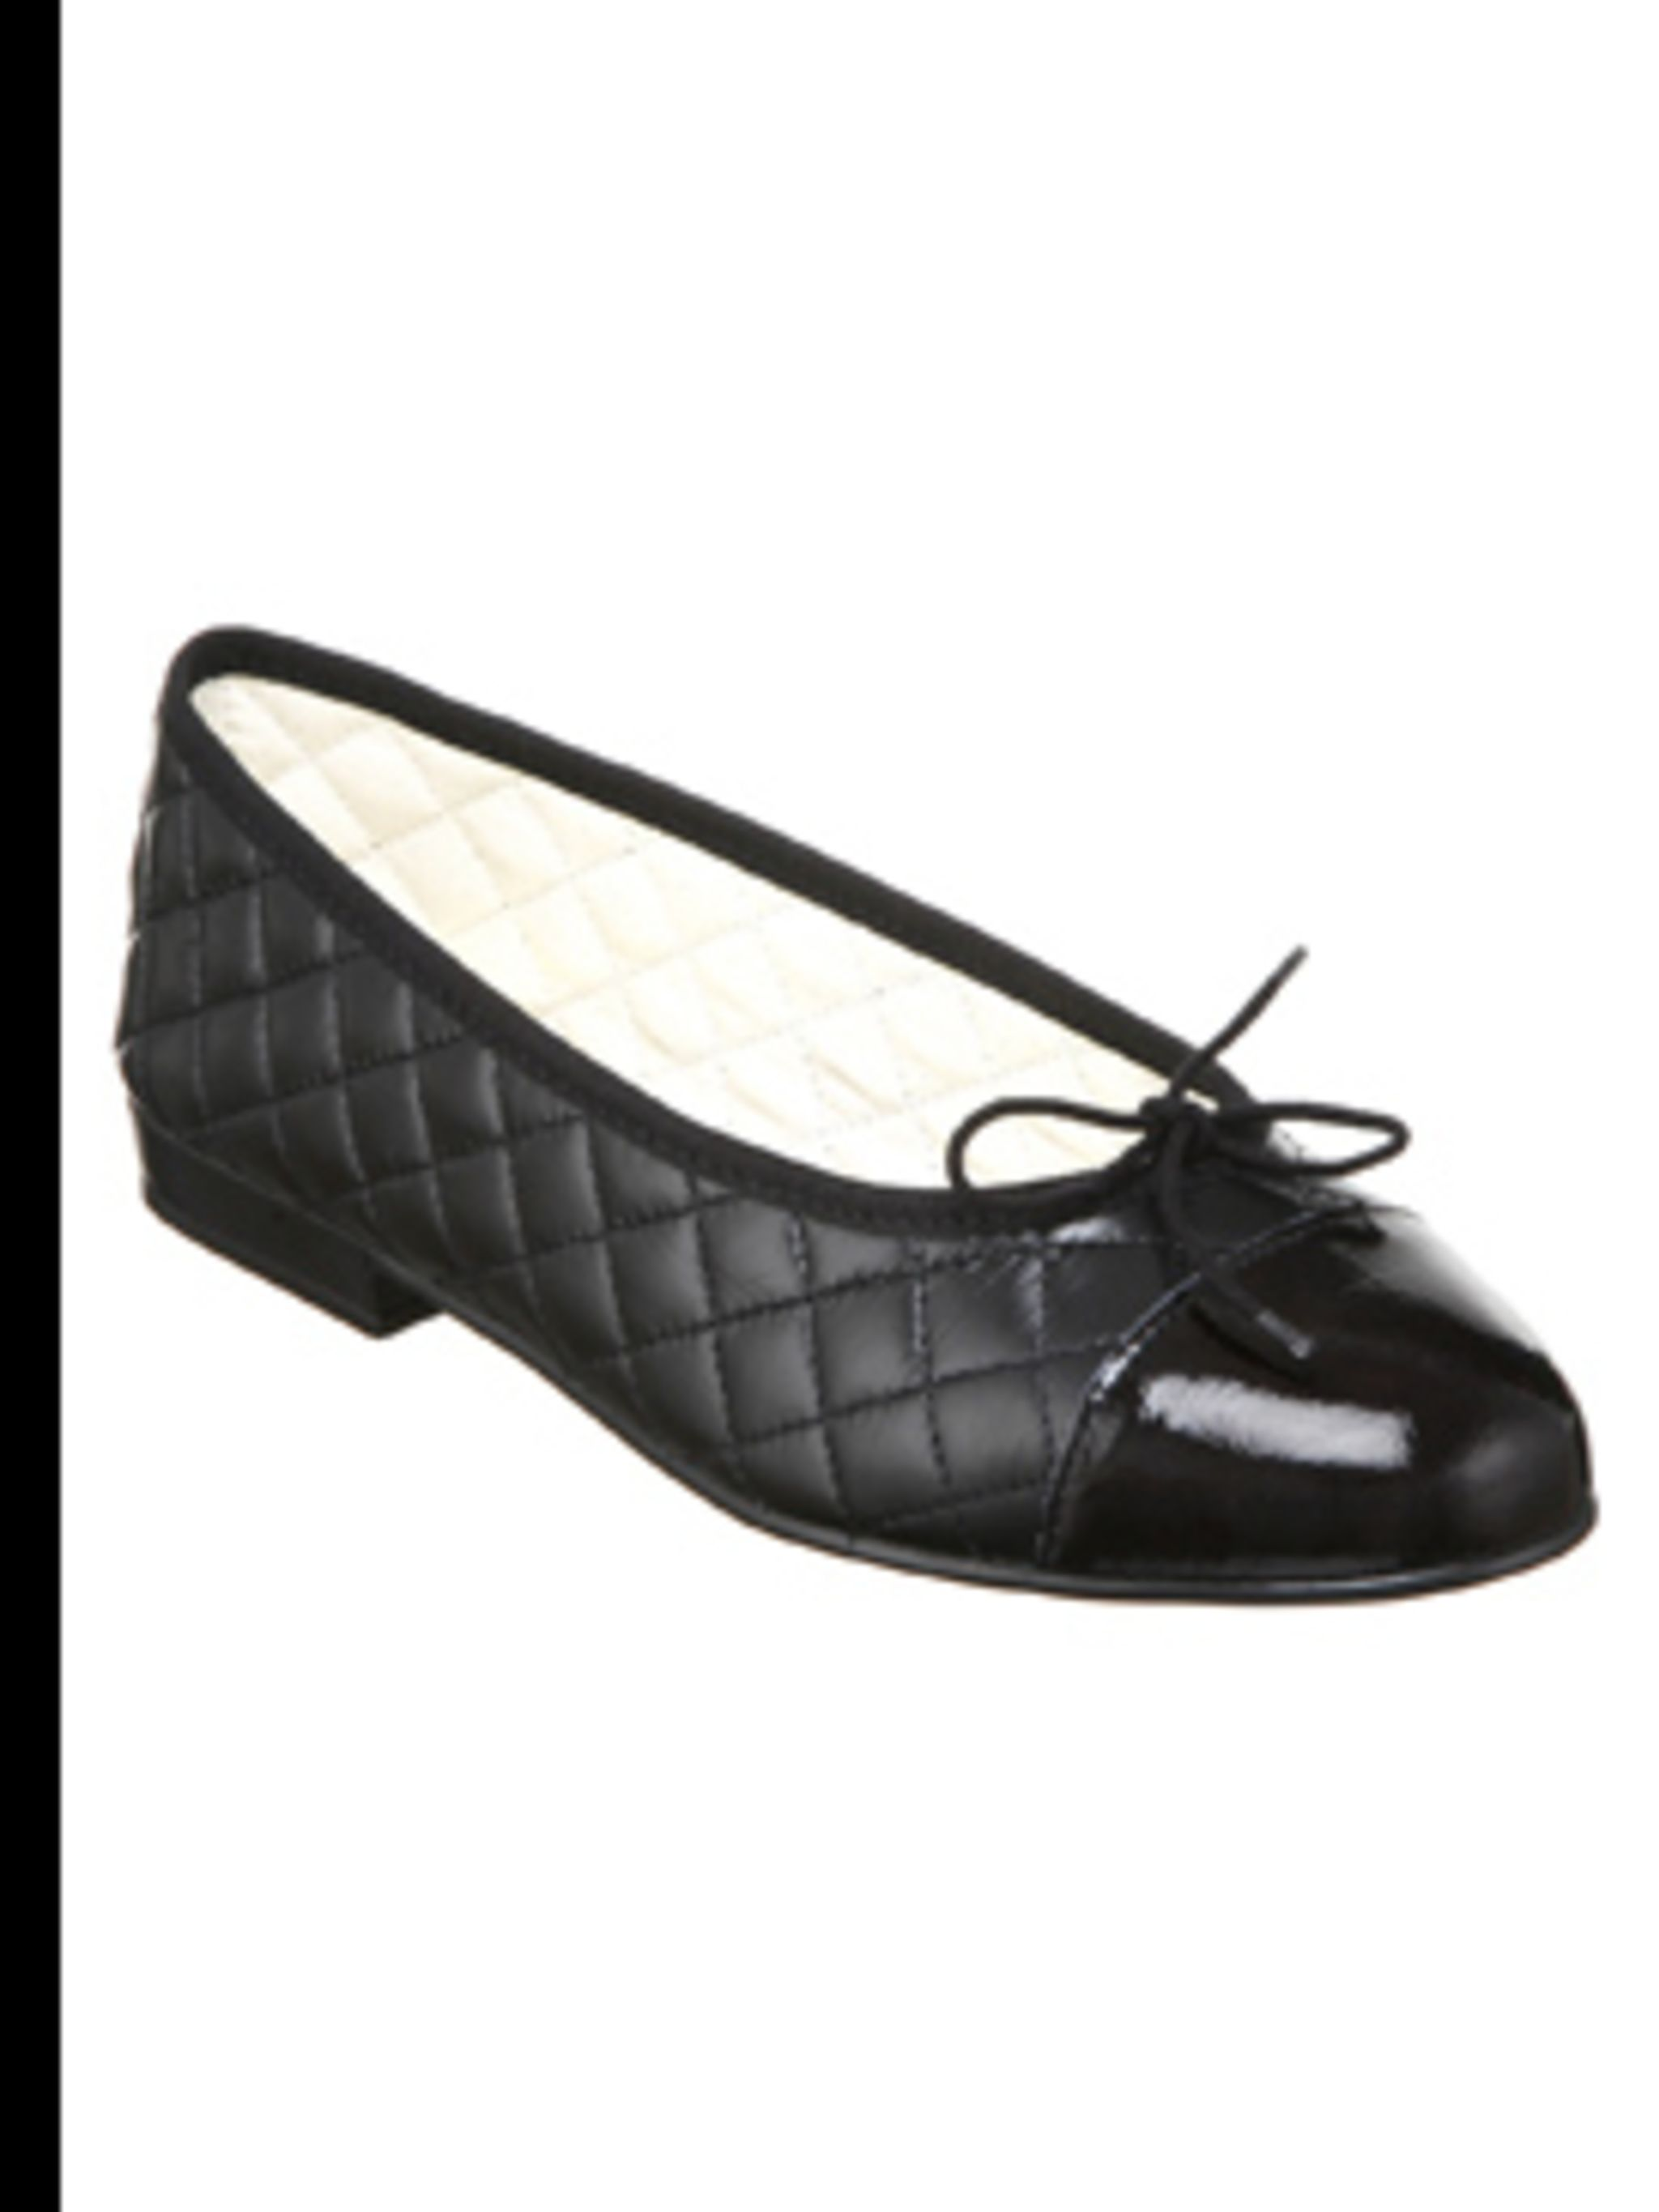 "<p>Shoes, £70.00 by <a href=""http://www.frenchsole.com/product_info.php?shoe_id=rt8by%20kog0LeooOp"">French Sole</a></p>"